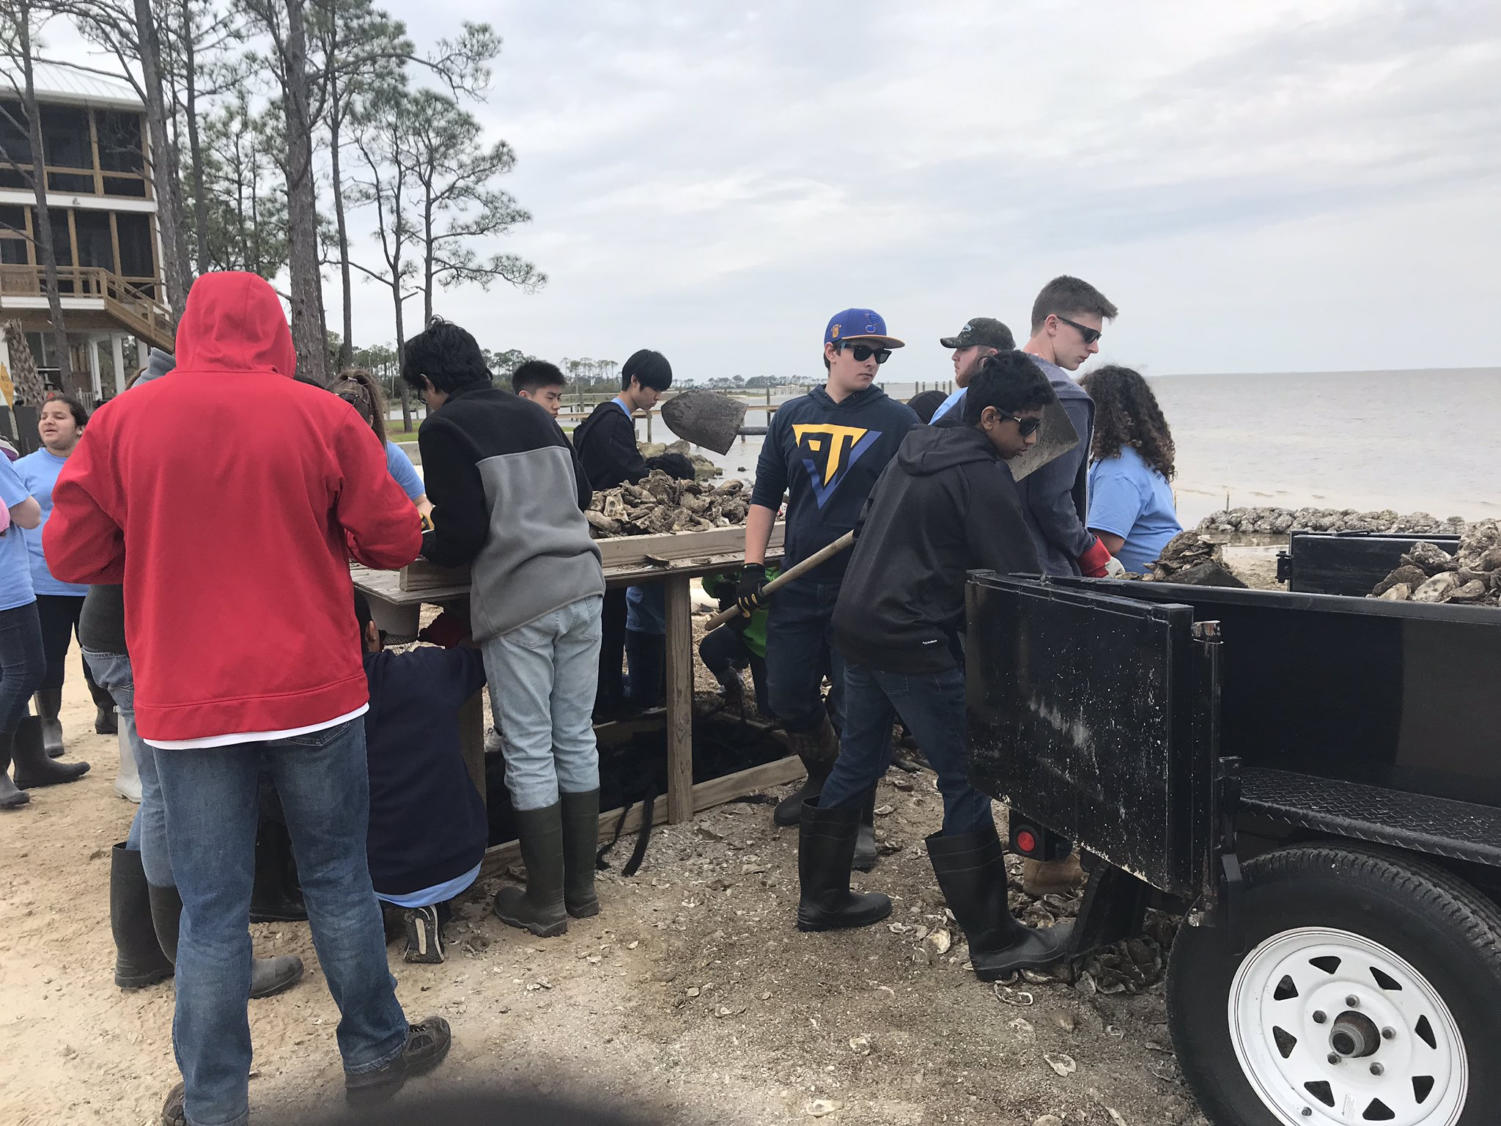 Students work towards rebuilding the shoreline during the annual Spring Break Service Trip. MHS students traveled to help communities affected by hurricane Michael in Mexico City and Port St. Joe, Fla.